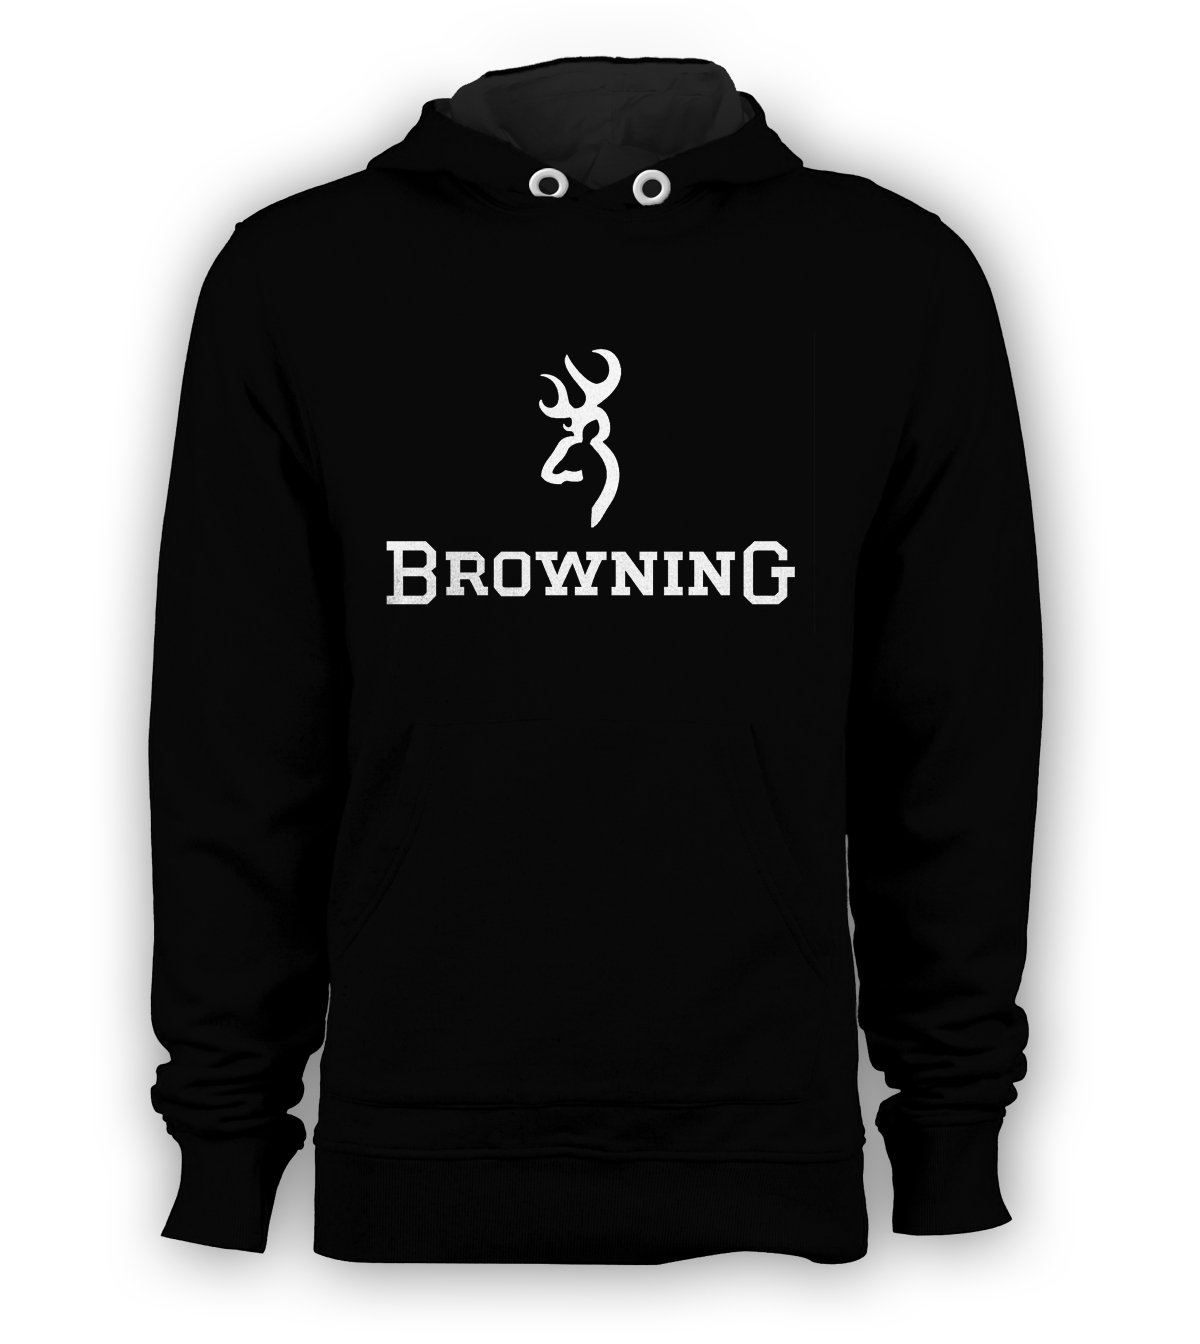 Browning Firearms Rifles Gun Pullover Hoodie Men Sweatshirts Size S to 3XL New Black